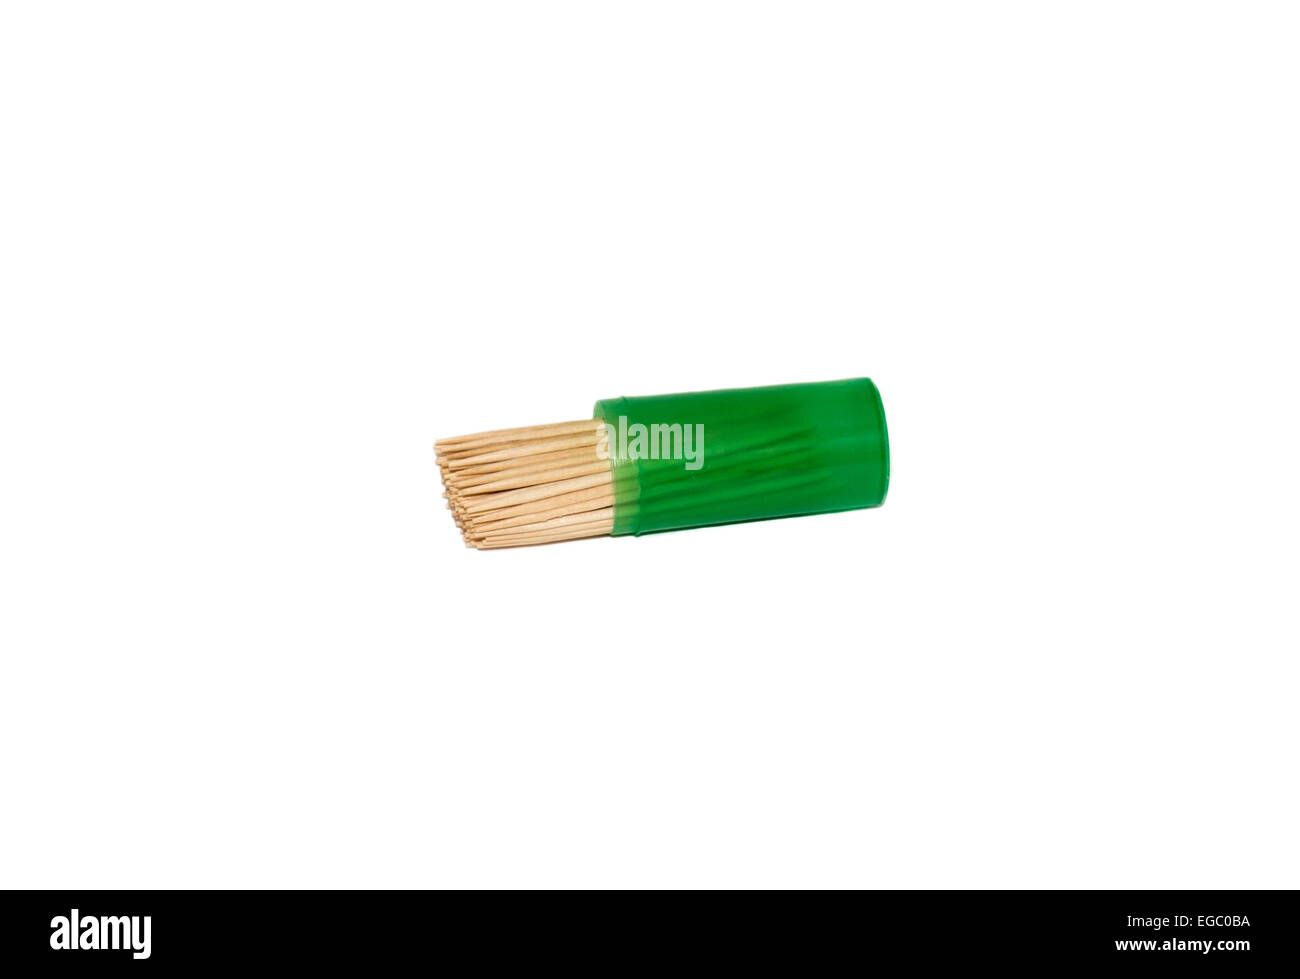 Toothpicks in a box on a white background isolated - Stock Image